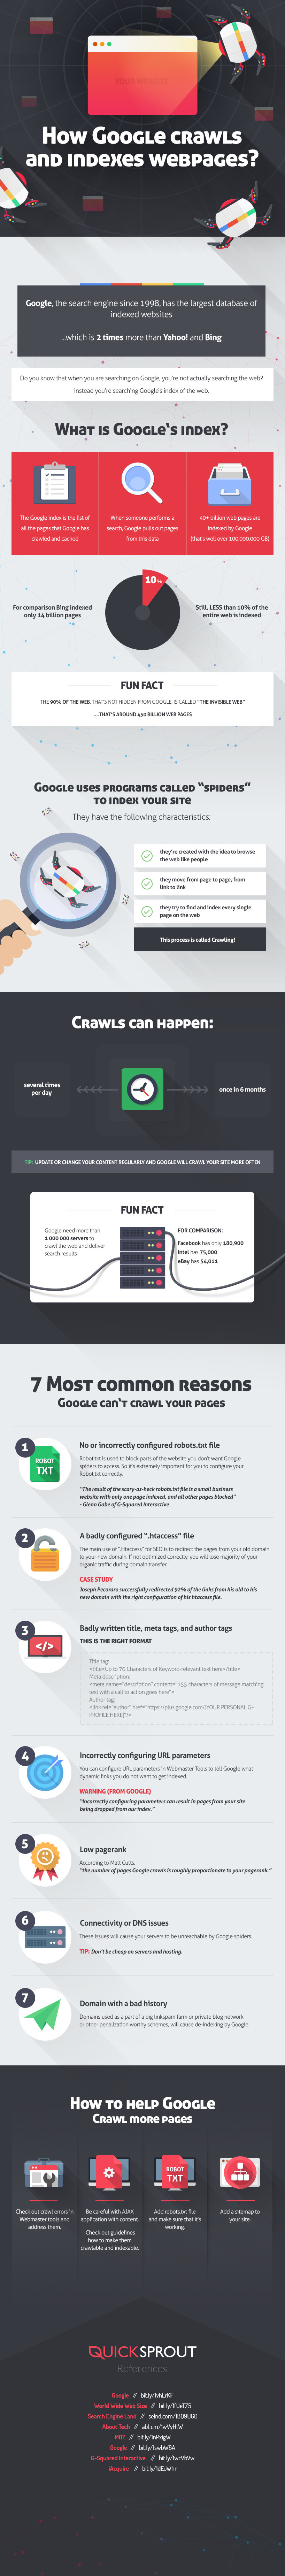 Infographic: How Google Crawls and Indexes Web Pages